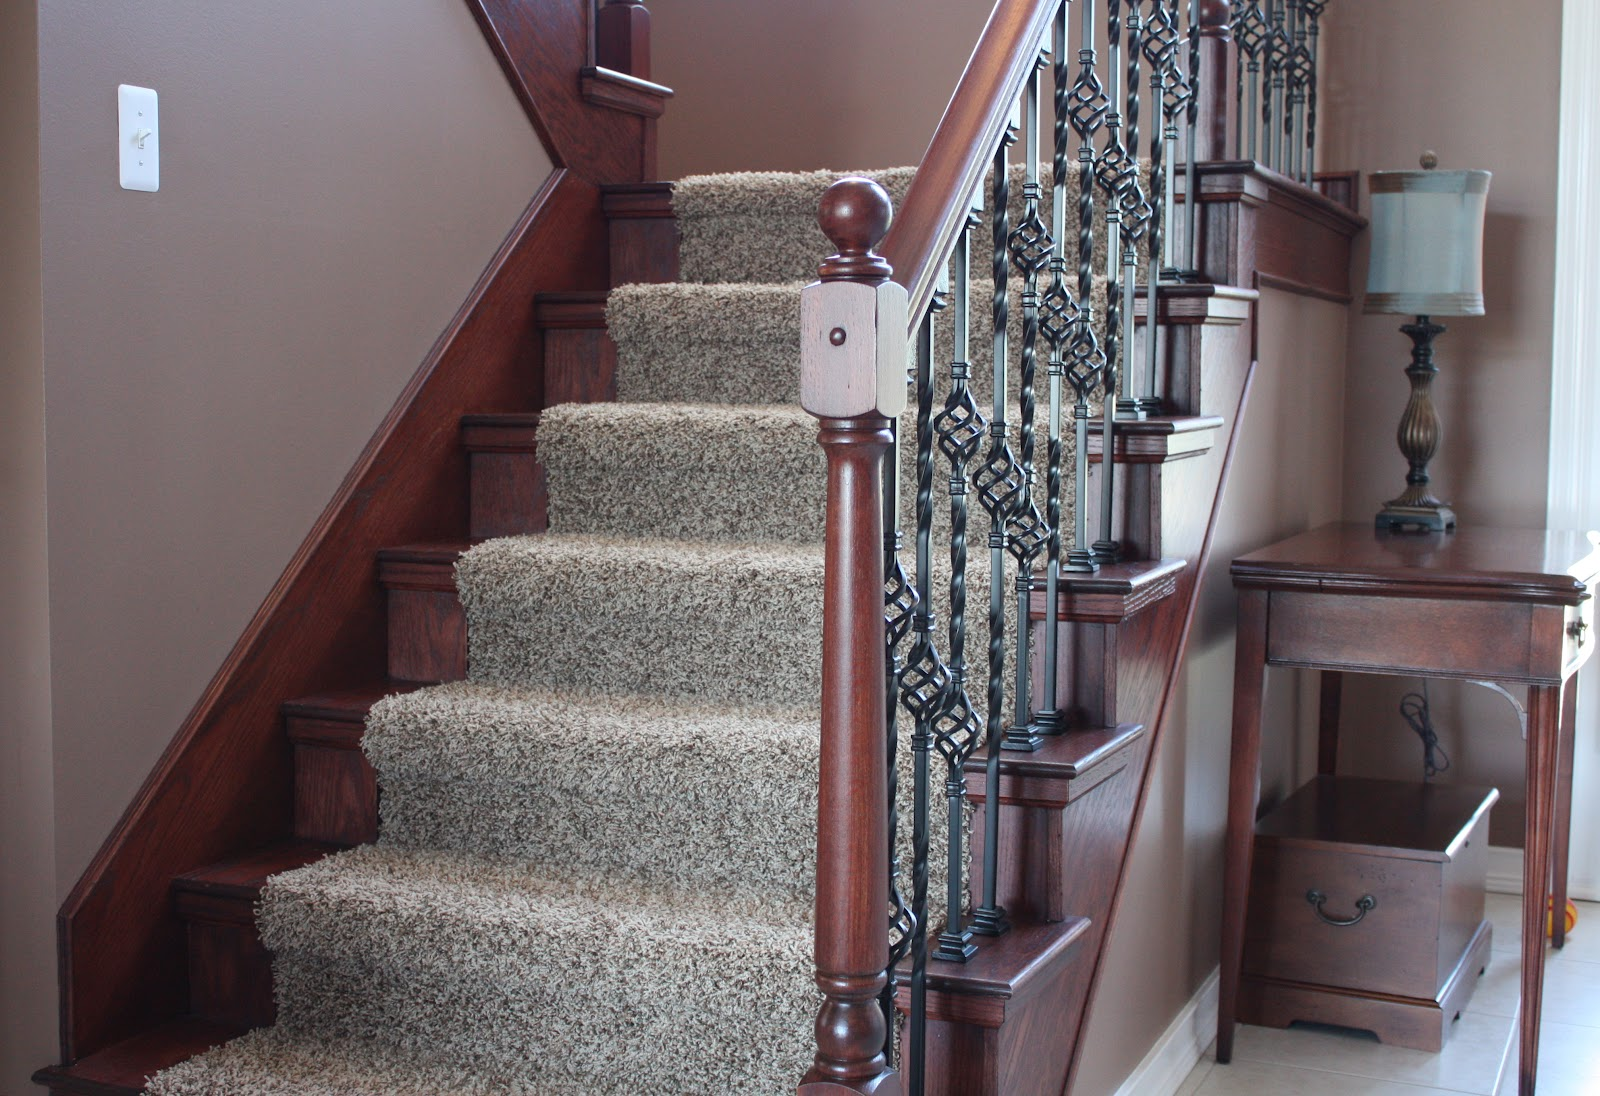 The Staircase And Catwalk Are Vital Organs In This Split Level Home.